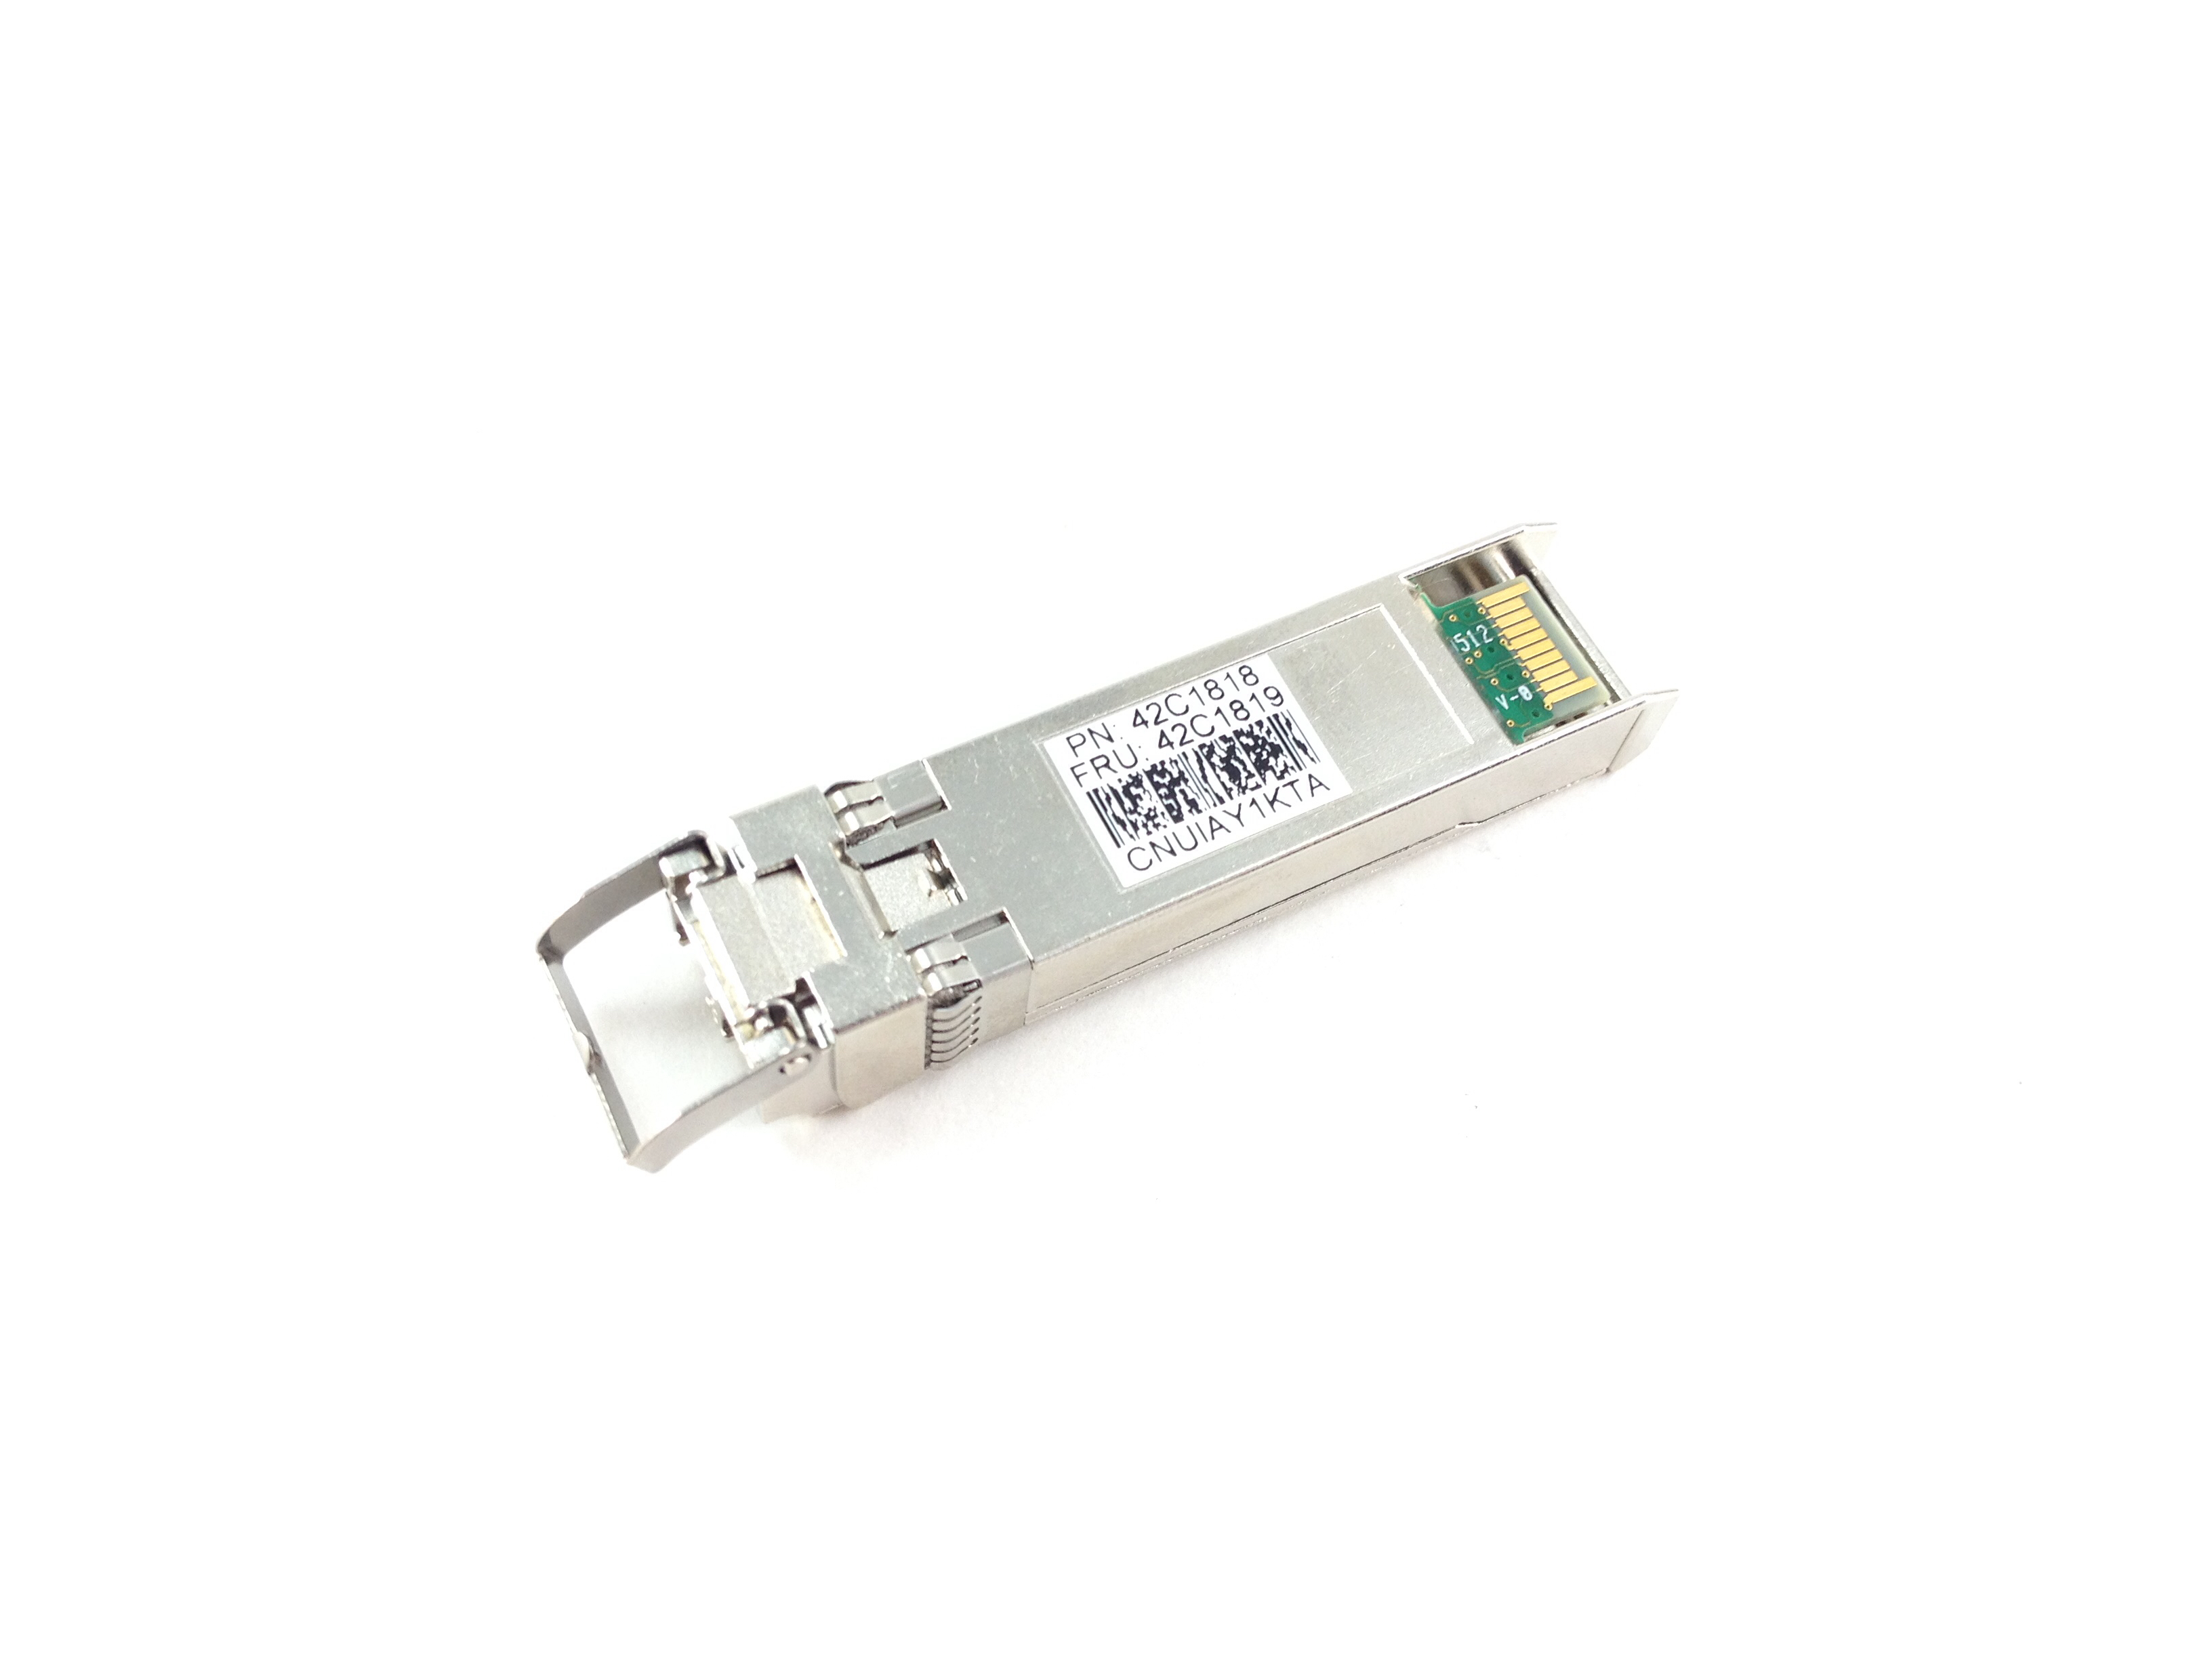 IBM Brocade 10 Gigabit SFP+ Sr Optical Transceiver (42C1819)